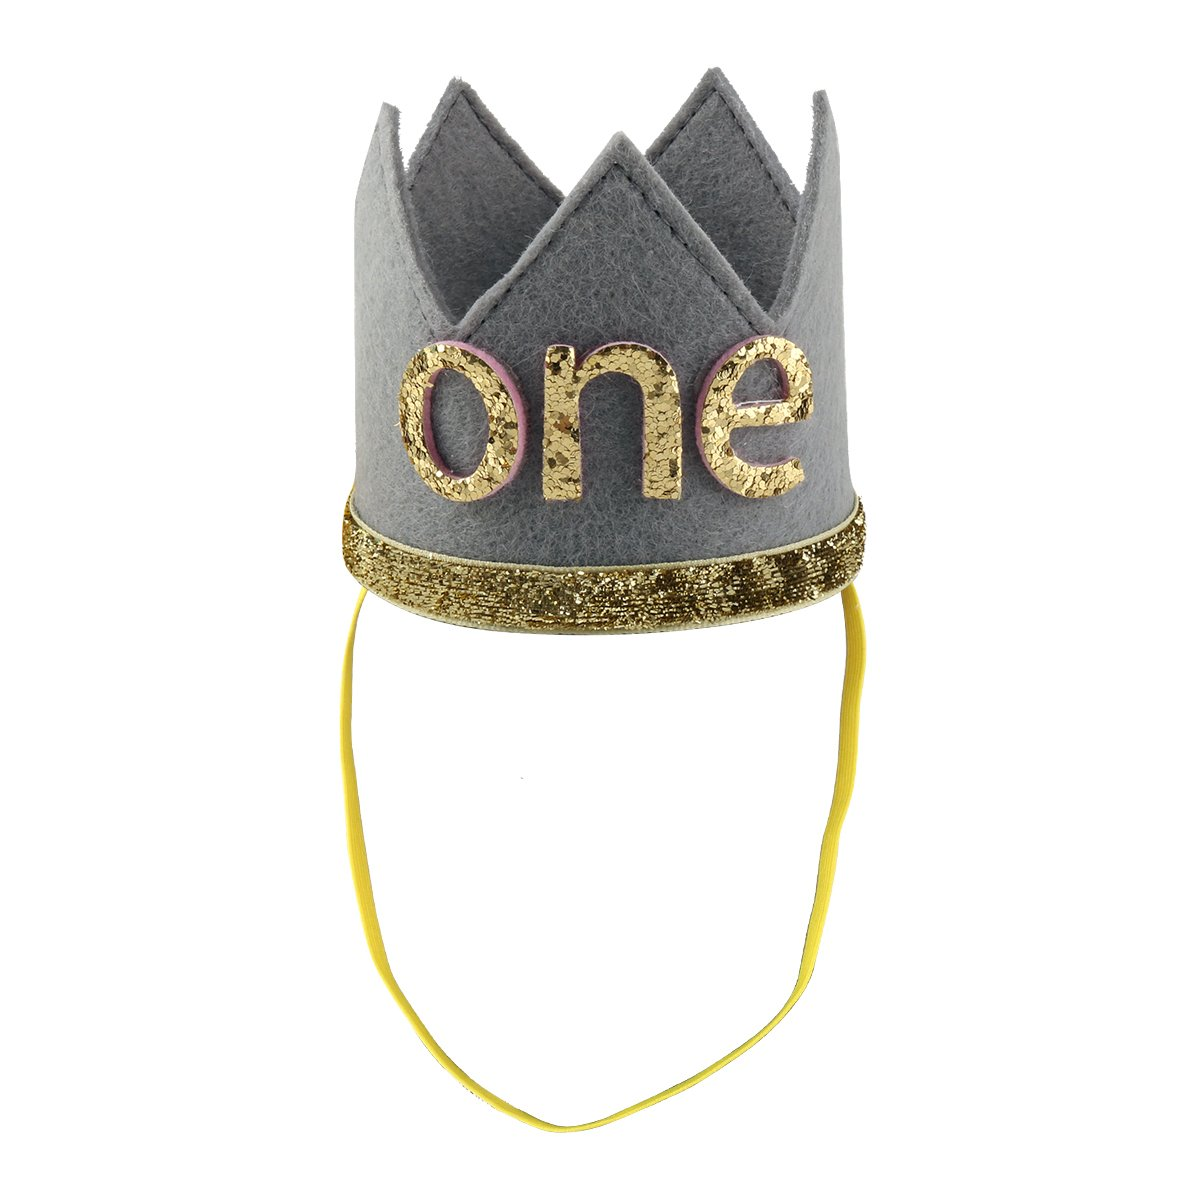 iiniim Baby Girls Boys First /1st Birthday Party Hat Little Prince Crown Headband Head wear Accessories Gray Letter ONE One Size